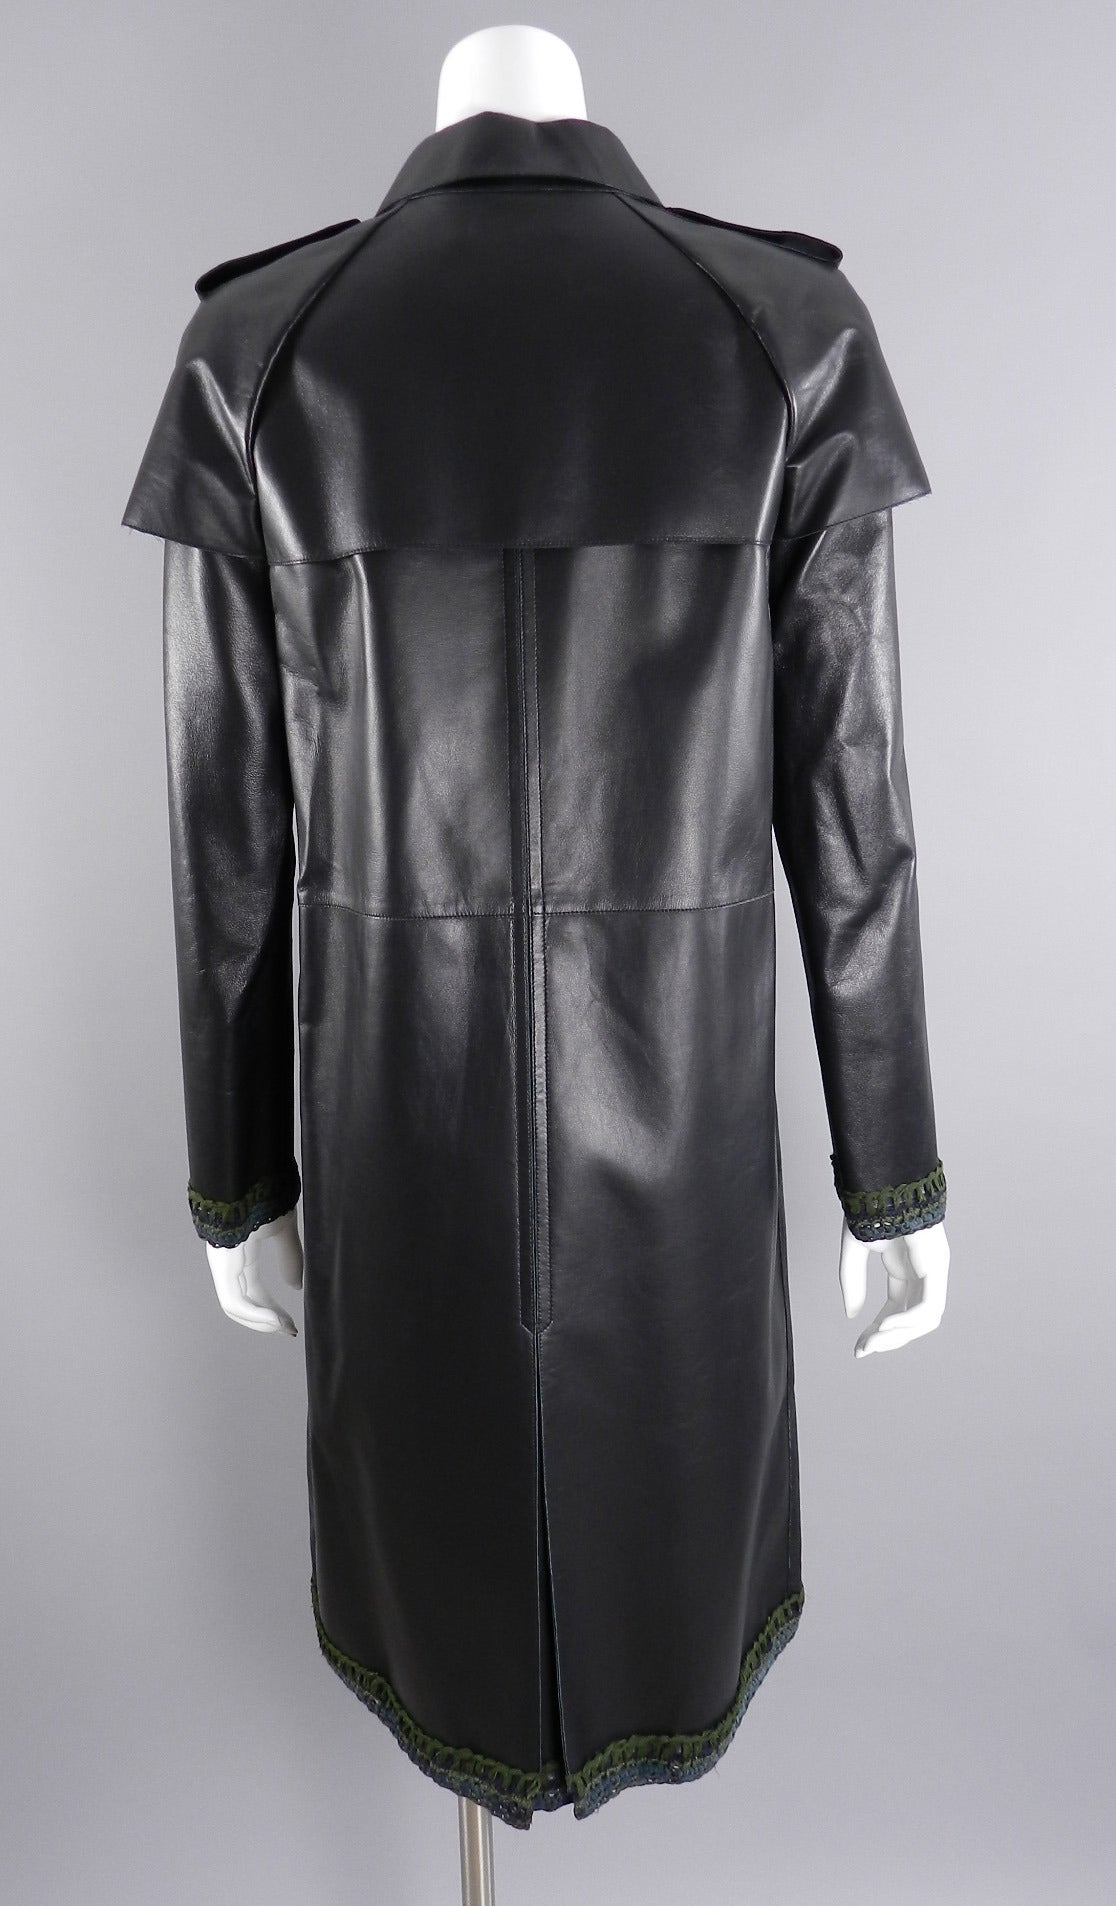 Chanel 12P Leather Coat with Green Knit Trim at 1stdibs